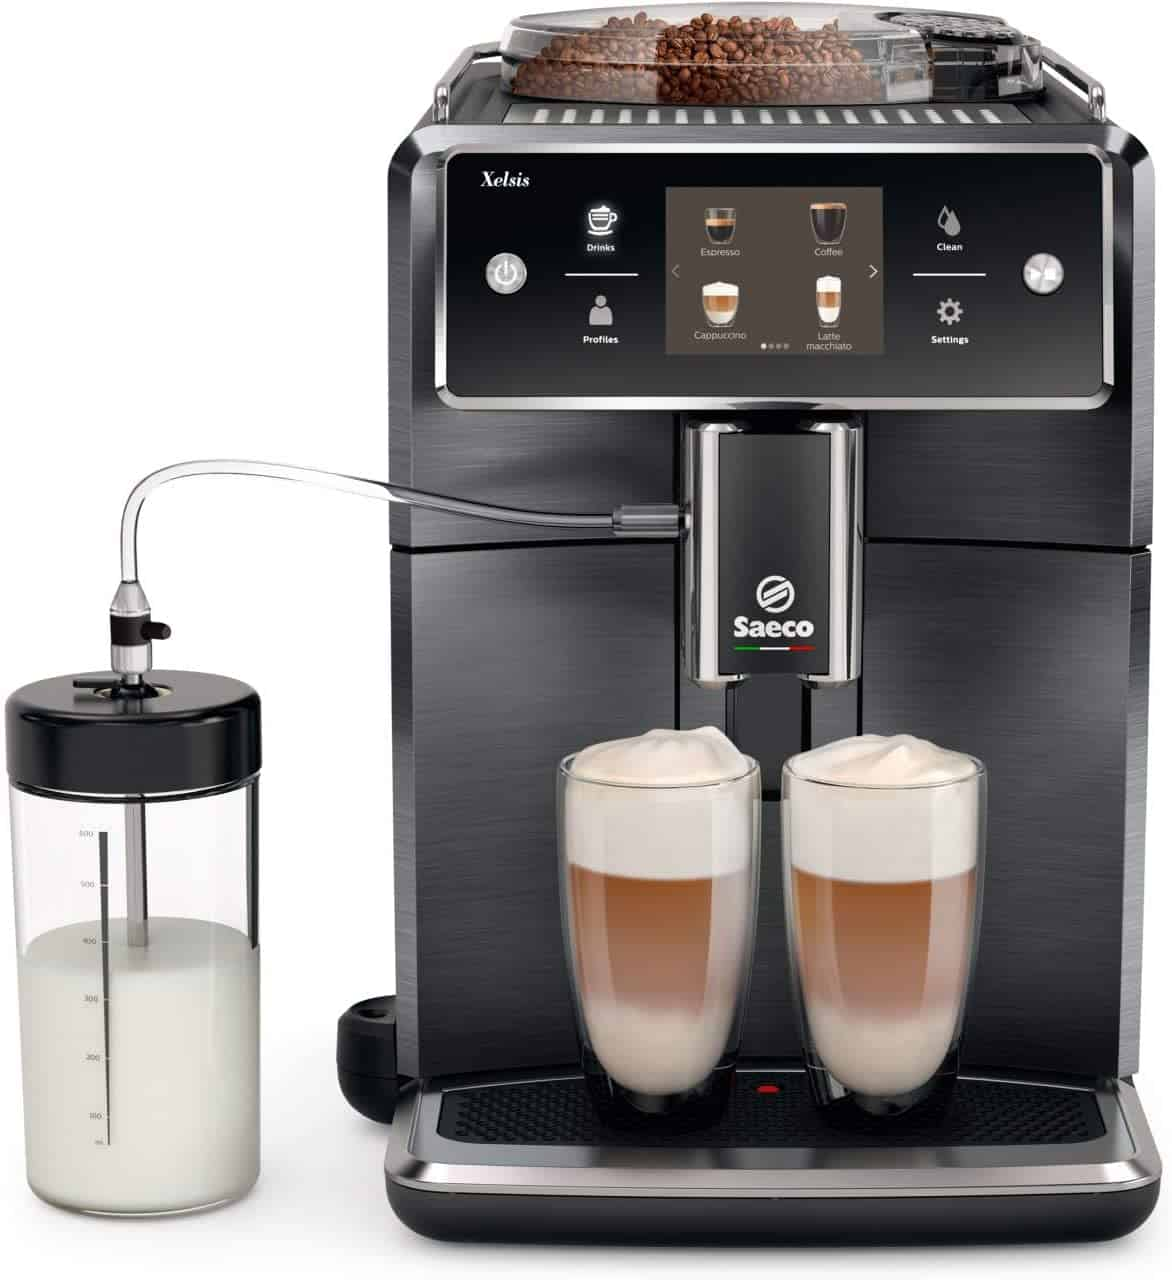 Saeco Xelsis Super Automatic Espresso Machine